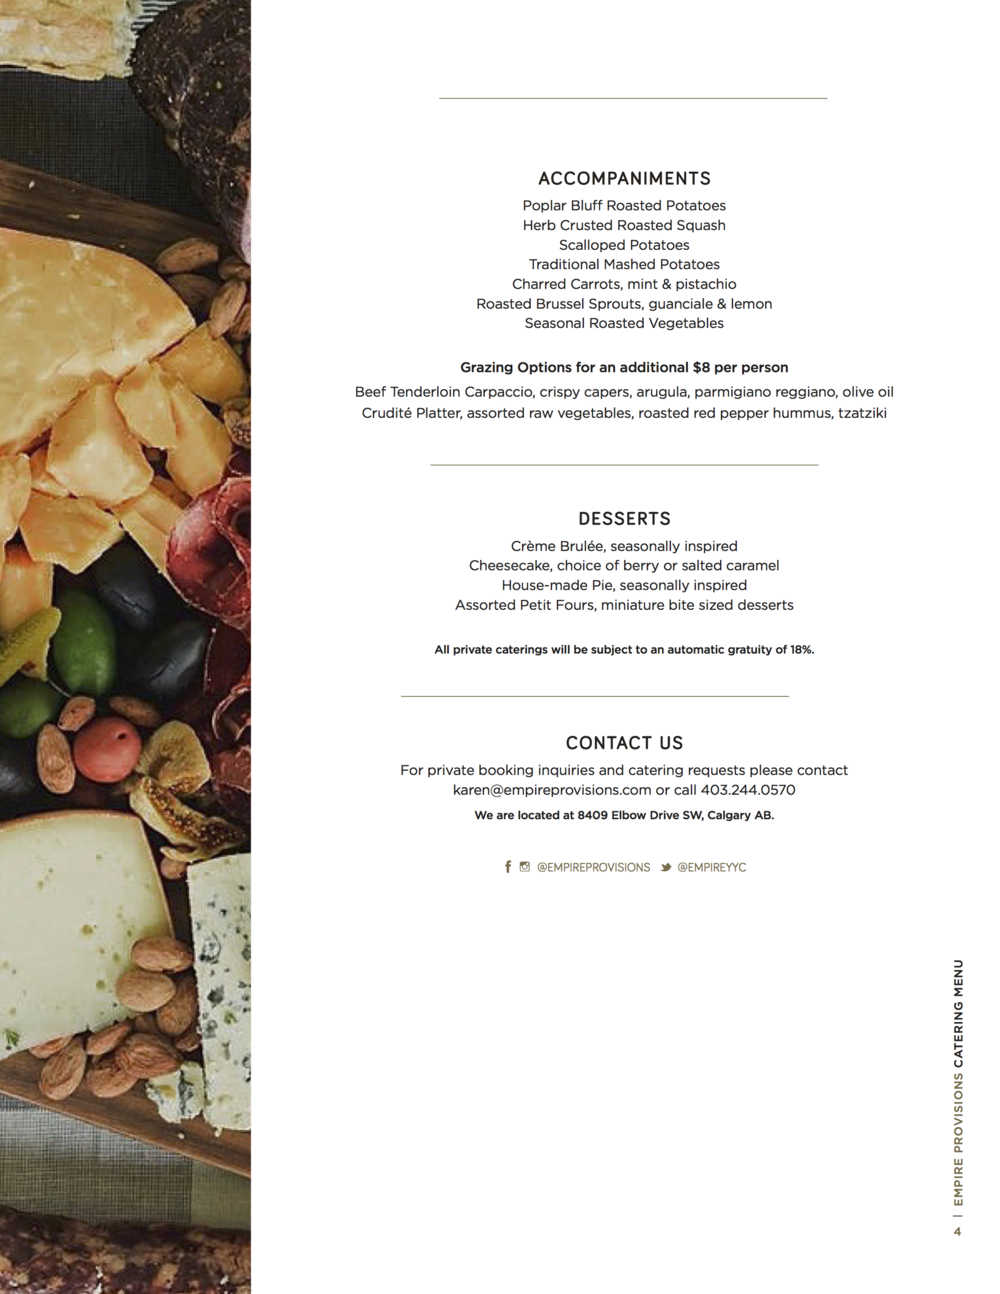 Empire Provisions Catering Menu 2018 Page 6.png